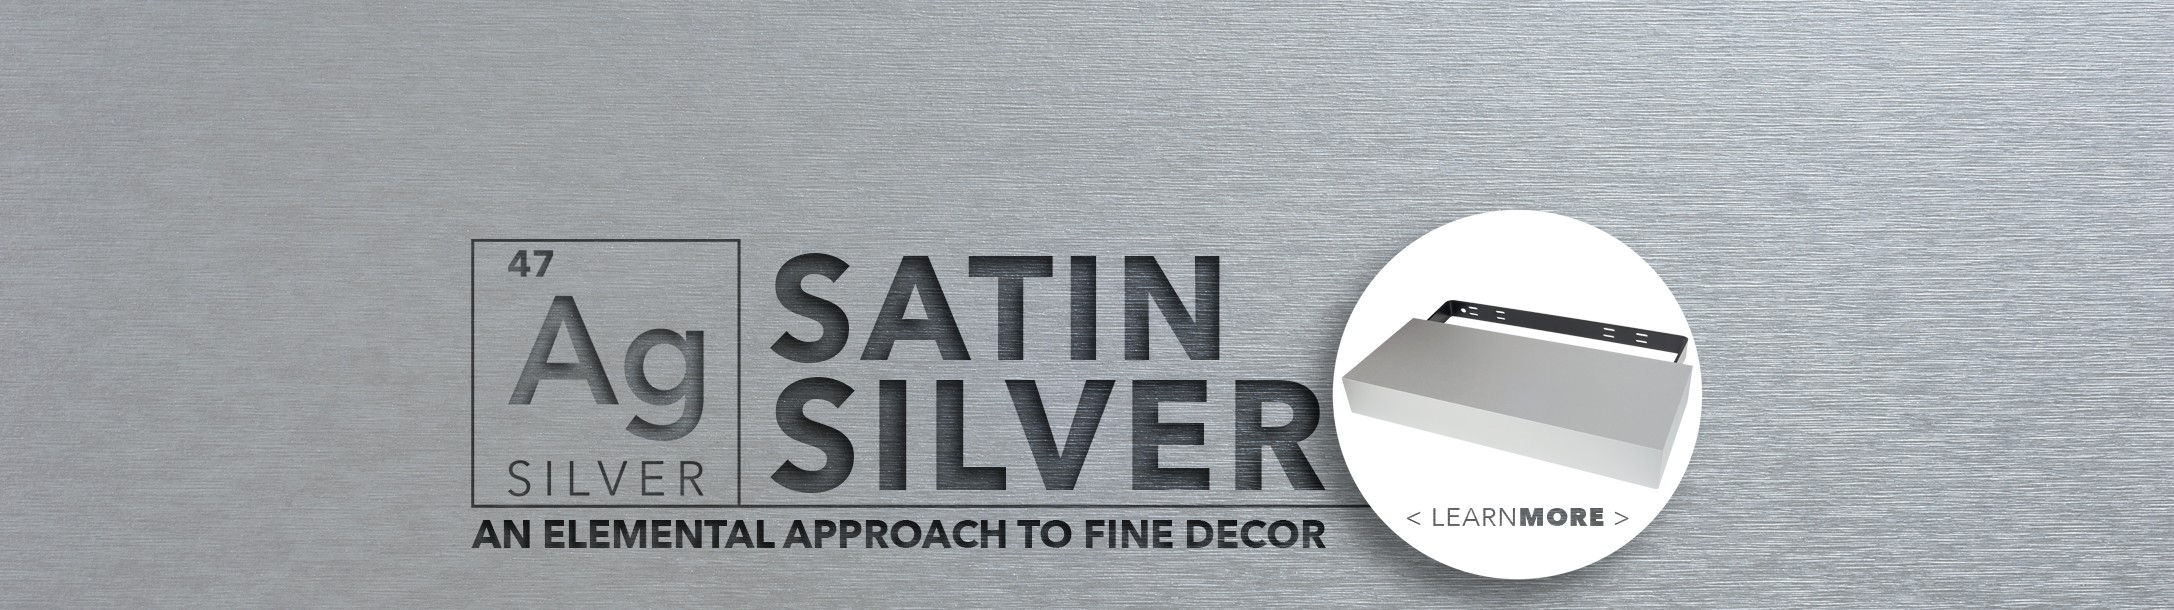 Satin Silver Floating Shelf